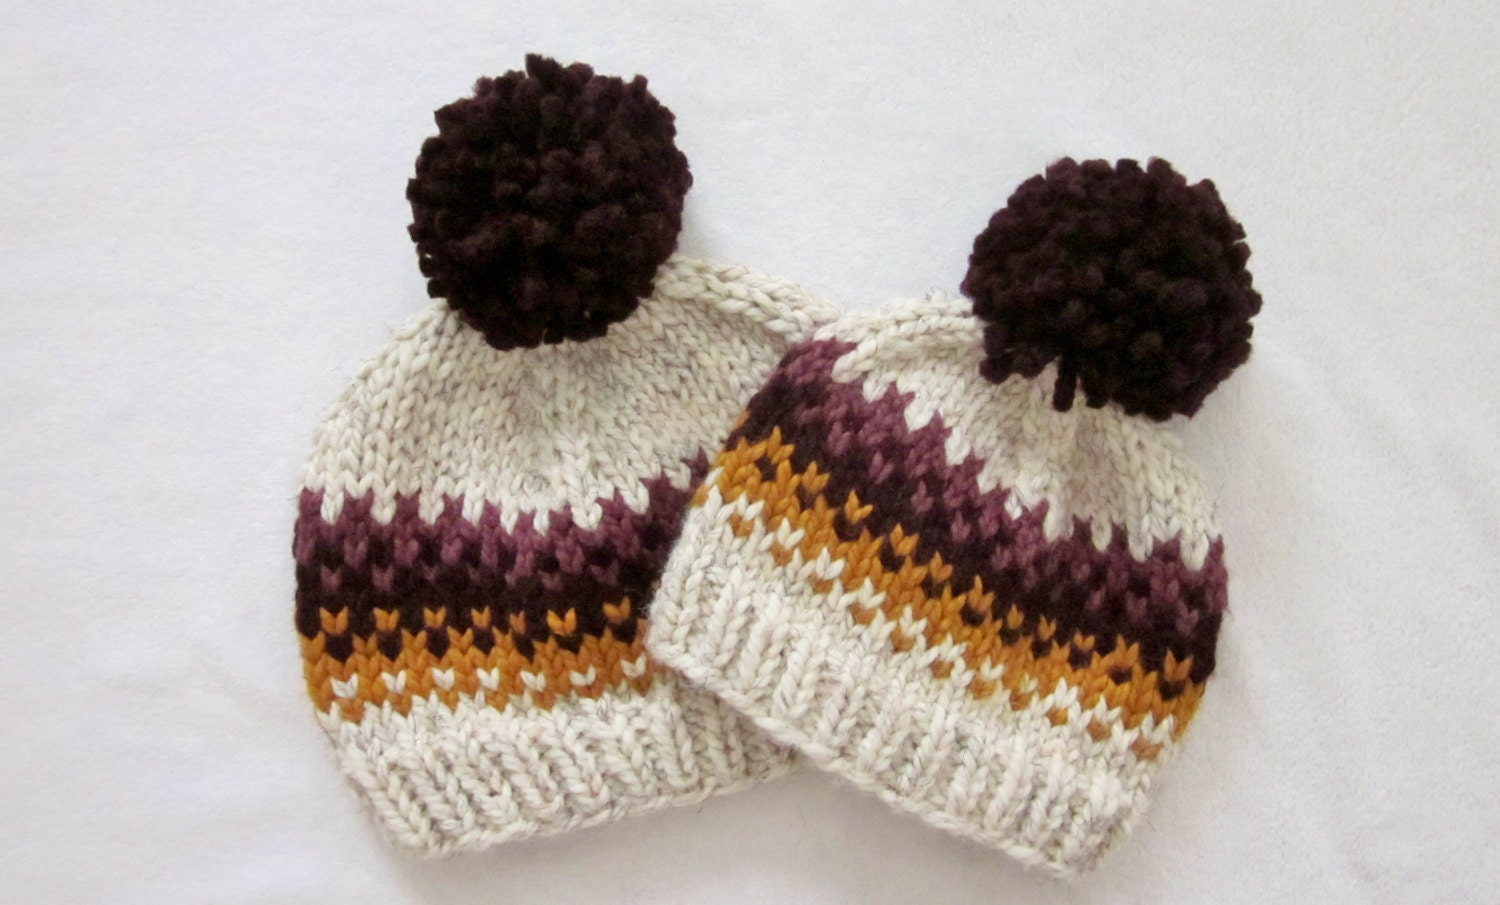 Knitted Throws Free Patterns : Hat Knitting Pattern // Fair Isle Pom Pom Hat Pattern // Hat Pattern for Kids...